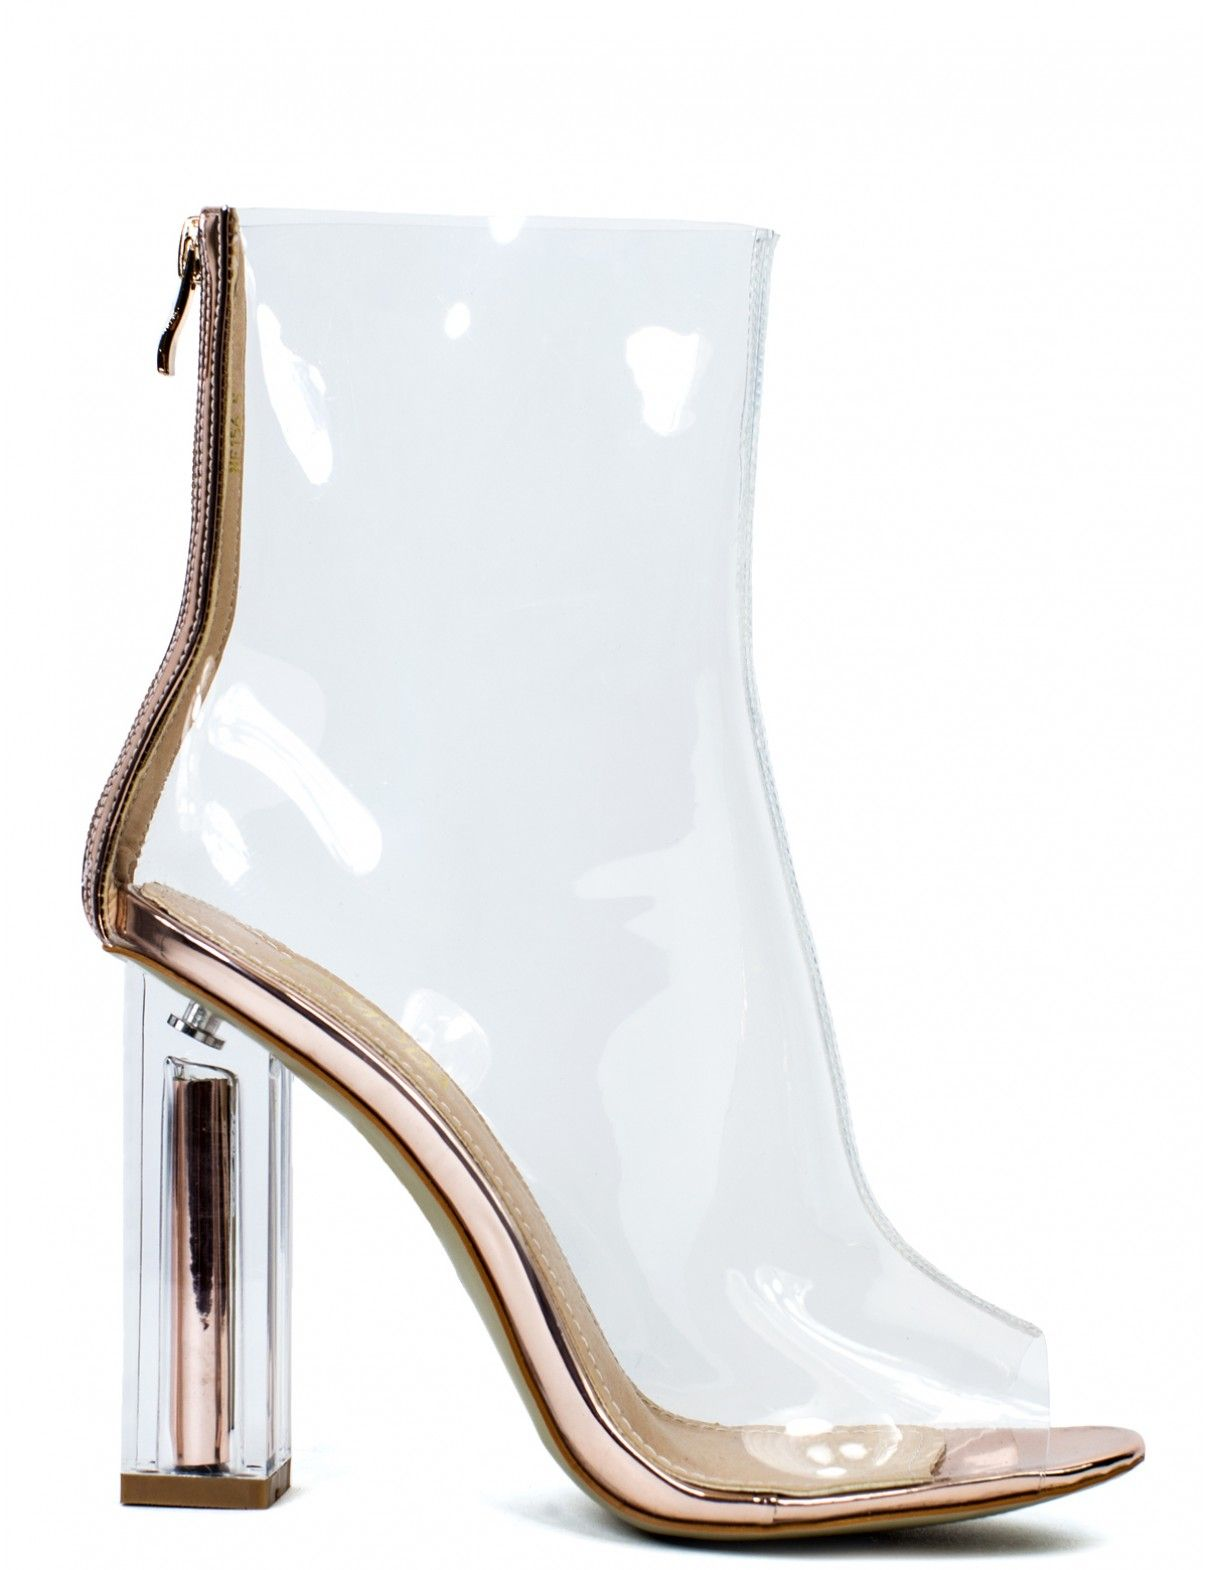 GOLD DIGGER CLEAR PERSPEX ROSE GOLD BLOCK HEELED BOOTS - As seen on SELENA GOMEZ! Exact match from LAMODA